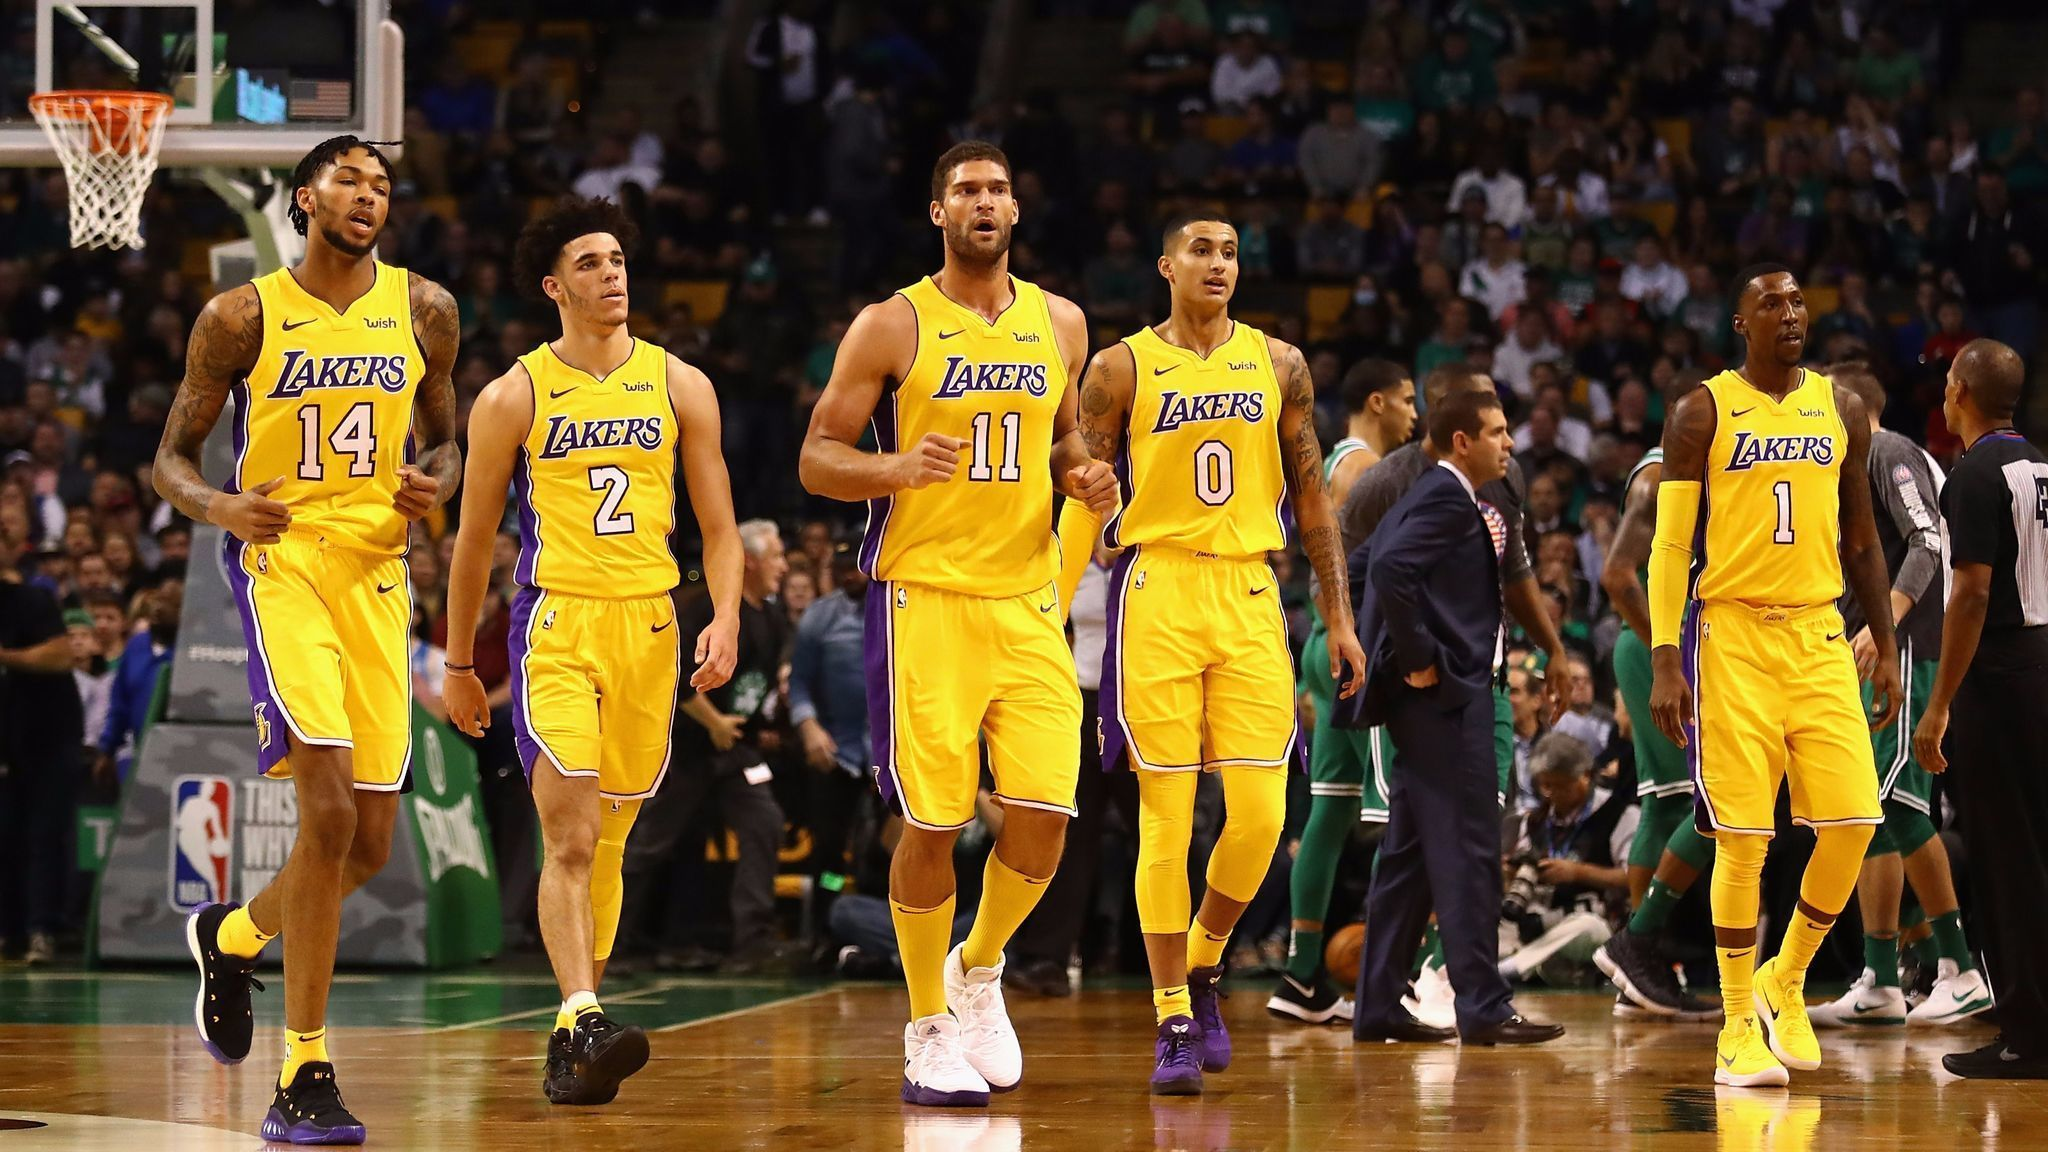 lakers - photo #31